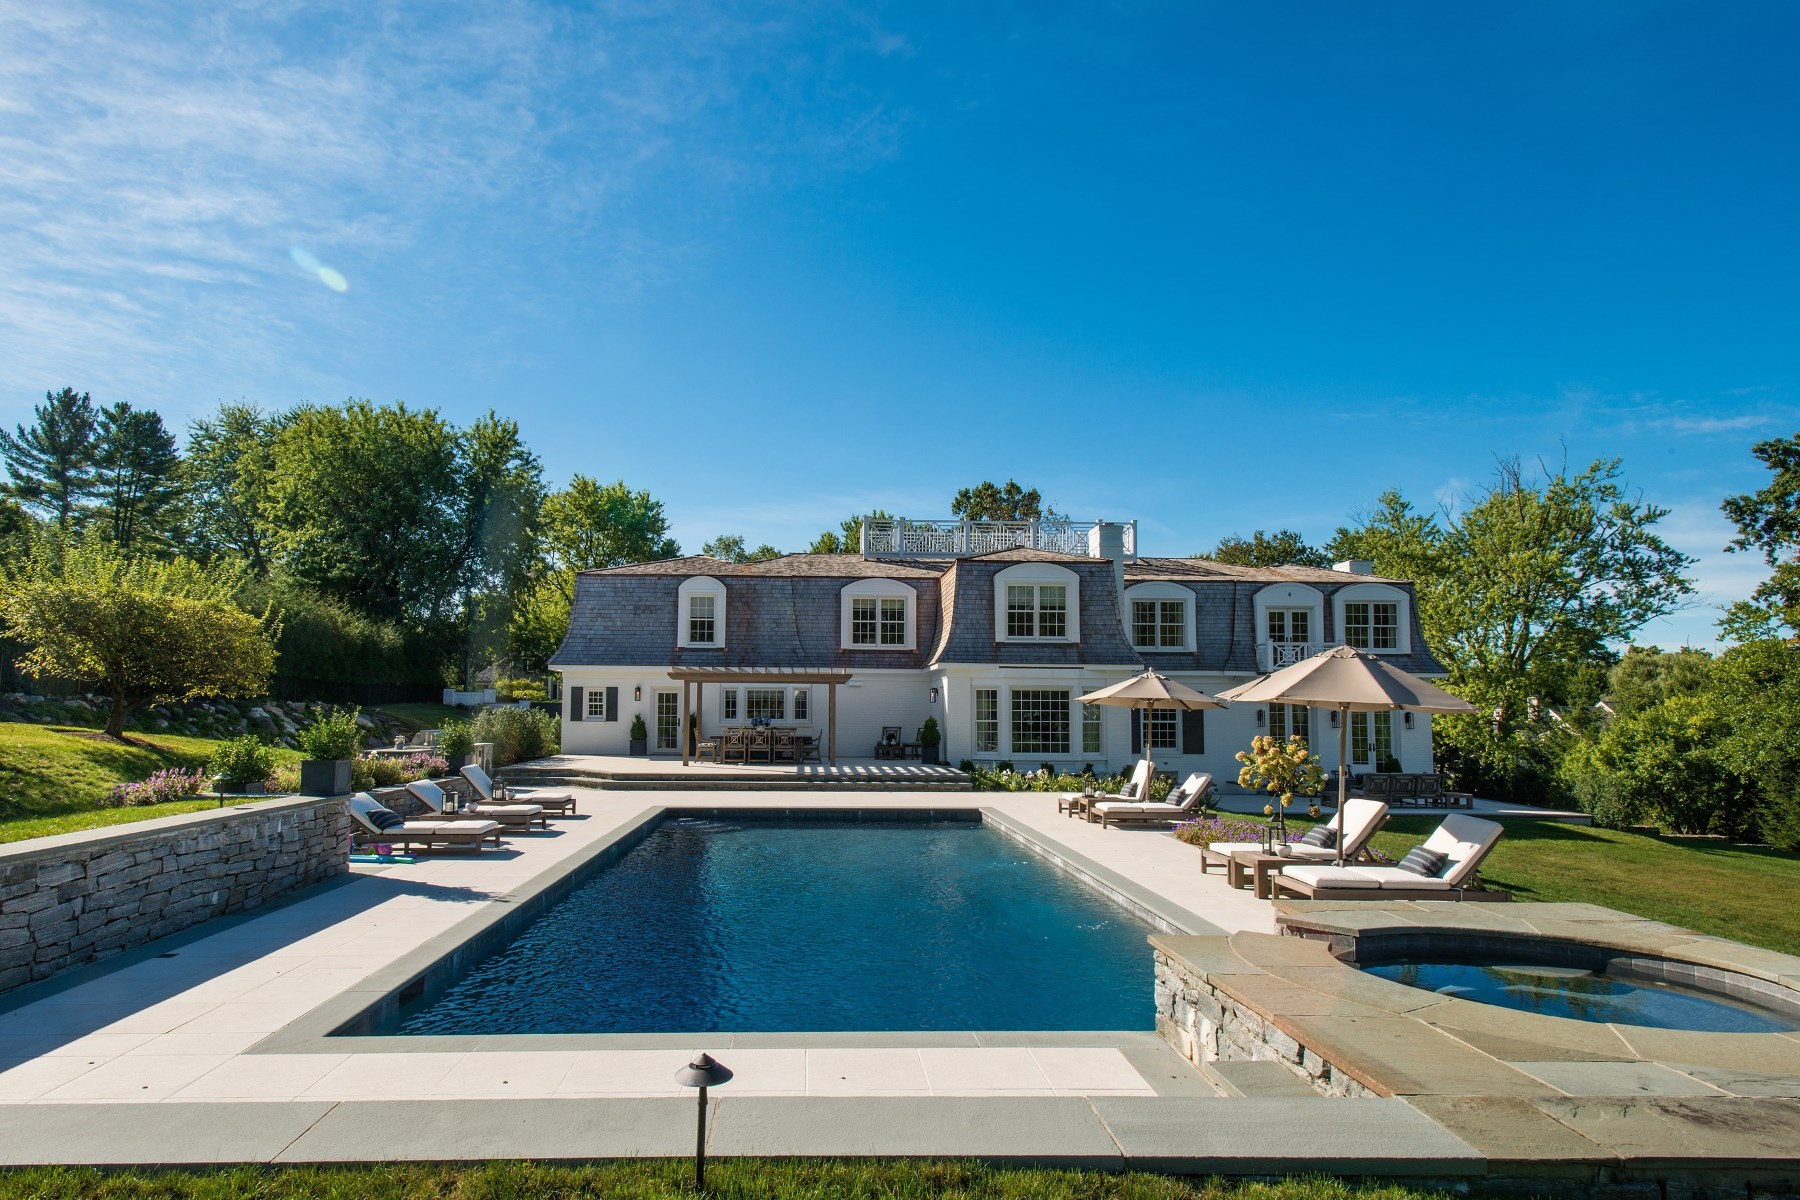 Single Family Home for Sale at Lindsay Drive 5 Lindsay Drive South Of Parkway, Greenwich, Connecticut, 06830 United States